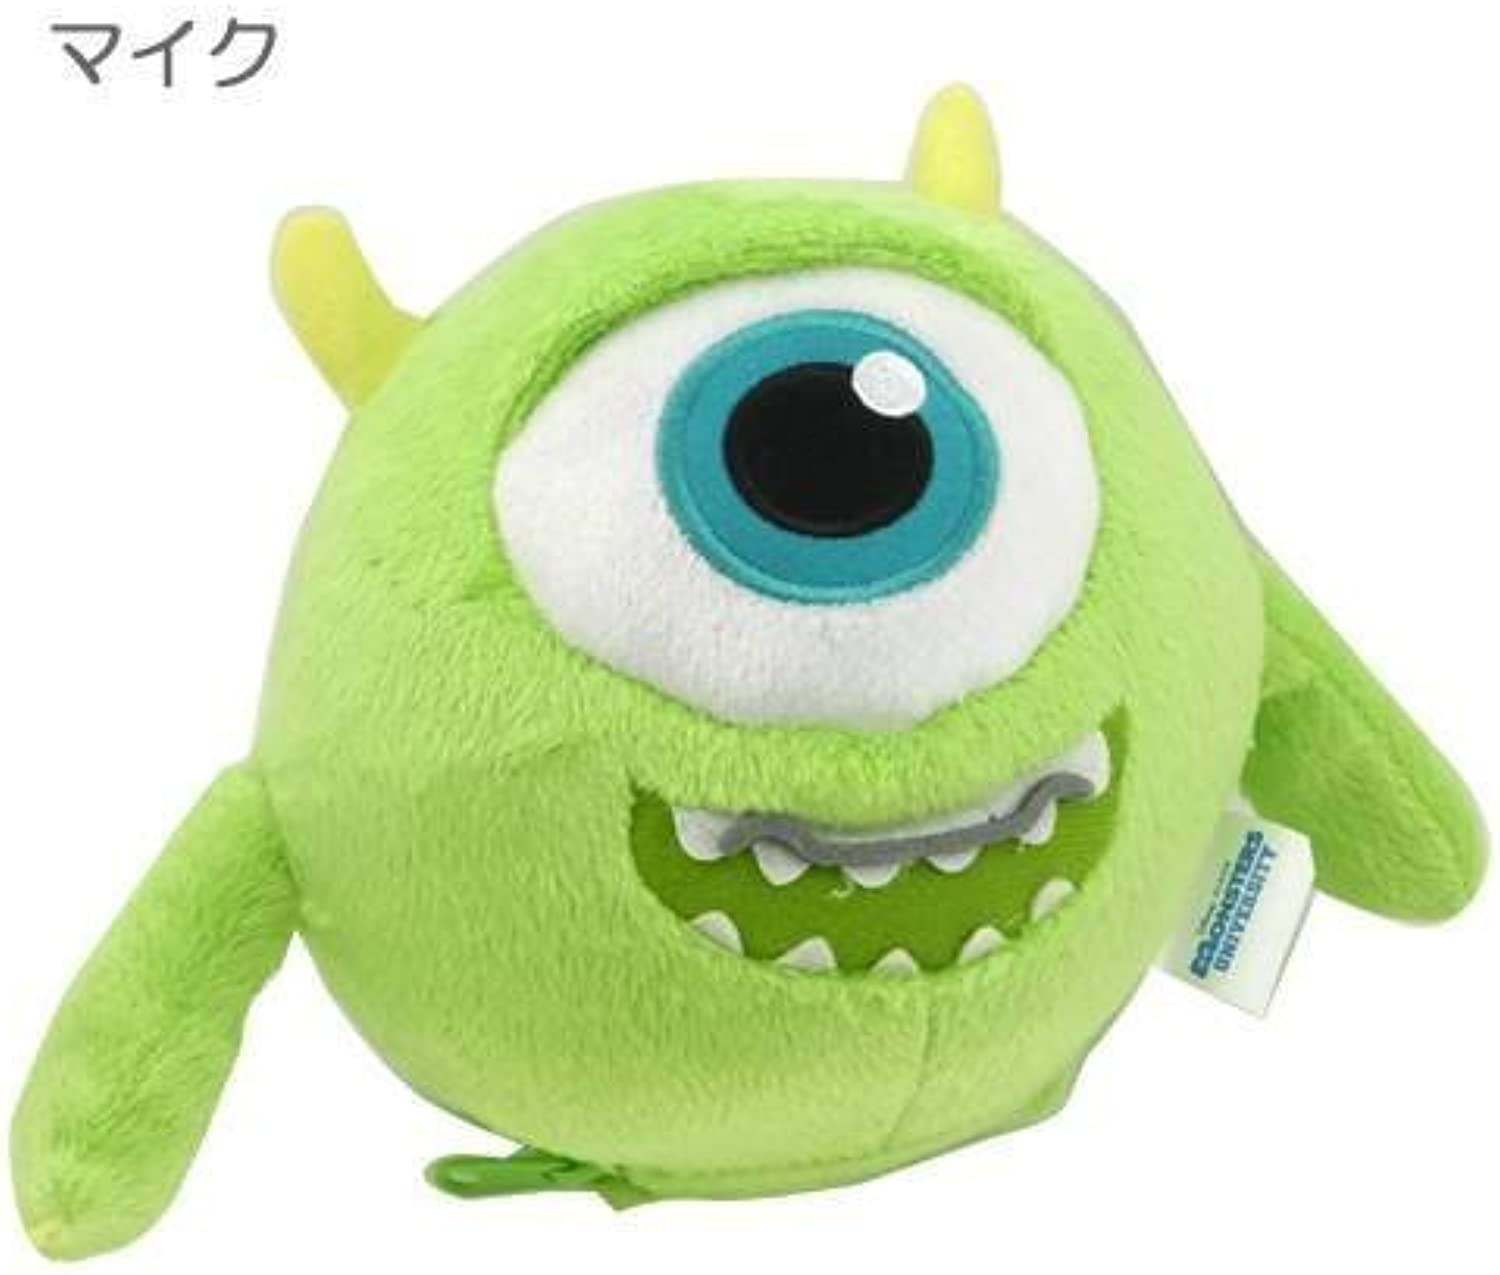 mejor servicio Monsters University hopping juguete relleno   truco con [Mike] [Mike] [Mike] (japonesas Importaciones)  genuina alta calidad